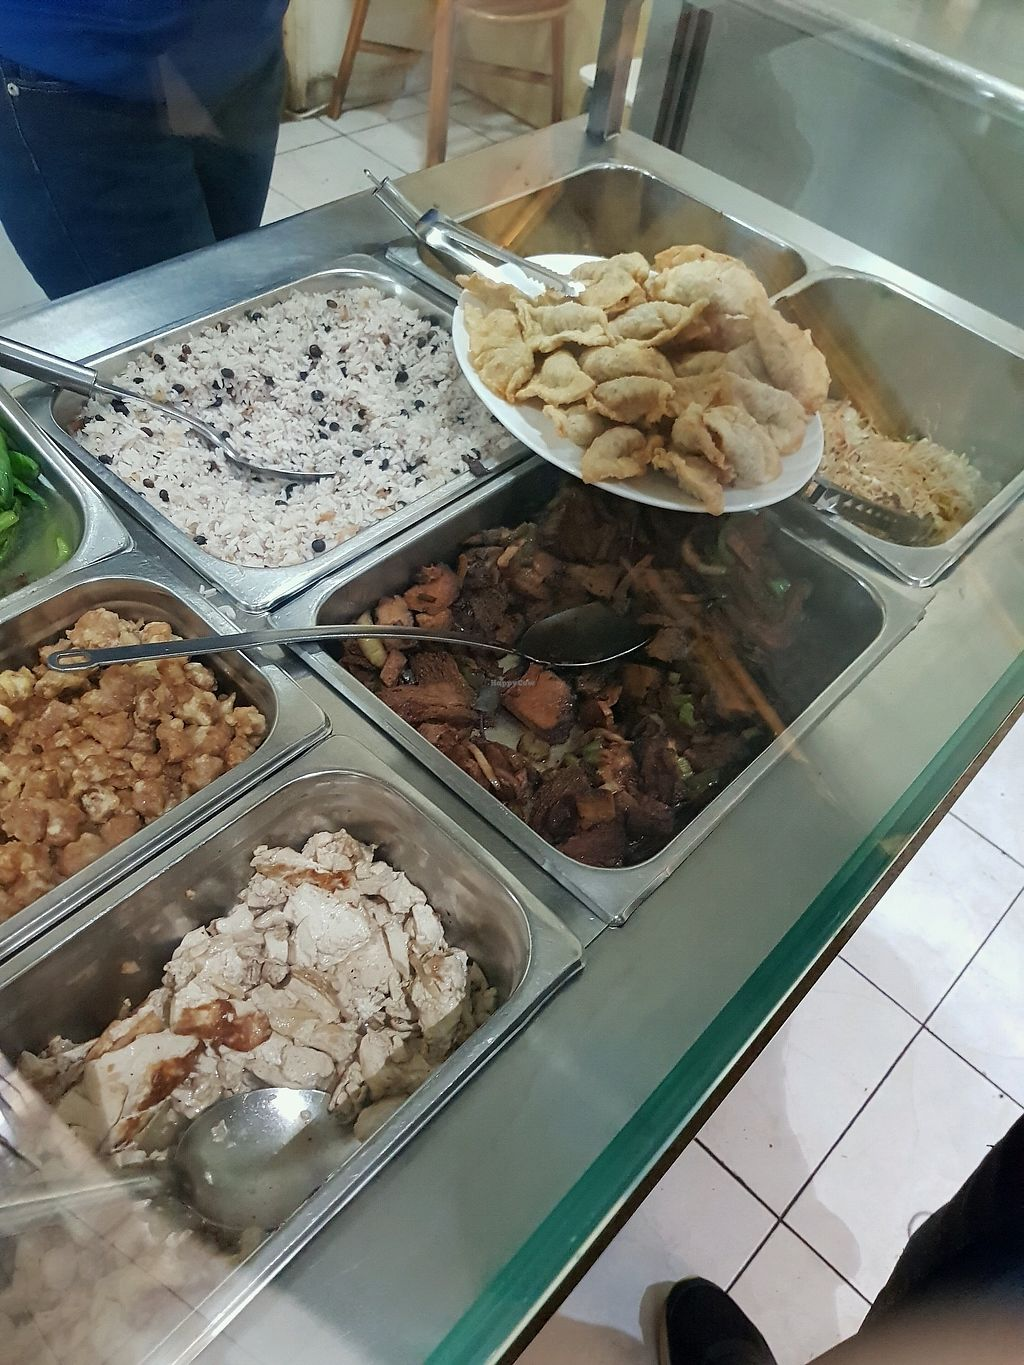 """Photo of Loving Hut  by <a href=""""/members/profile/Cynthiab"""">Cynthiab</a> <br/>vegan food <br/> February 4, 2018  - <a href='/contact/abuse/image/24077/354868'>Report</a>"""